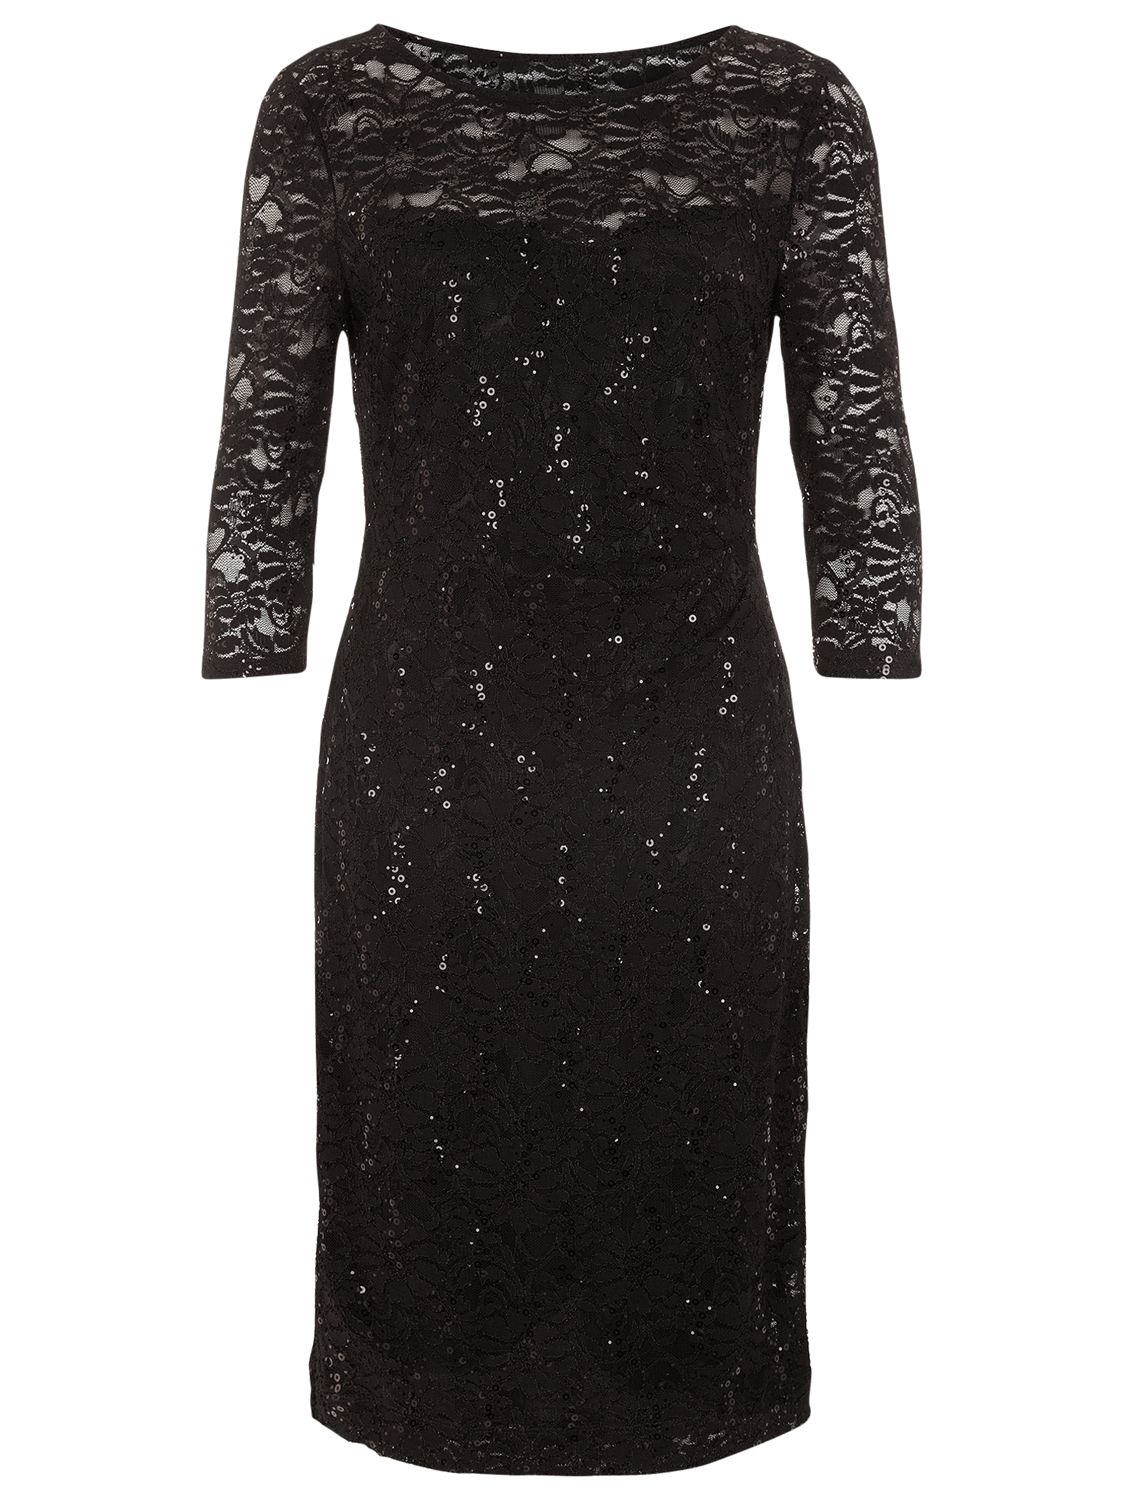 planet sparkle lace dress black, planet, sparkle, lace, dress, black, 10|12, clearance, womenswear offers, womens dresses offers, new years party offers, women, inactive womenswear, new reductions, womens dresses, party outfits, party dresses, special offers, 1699708